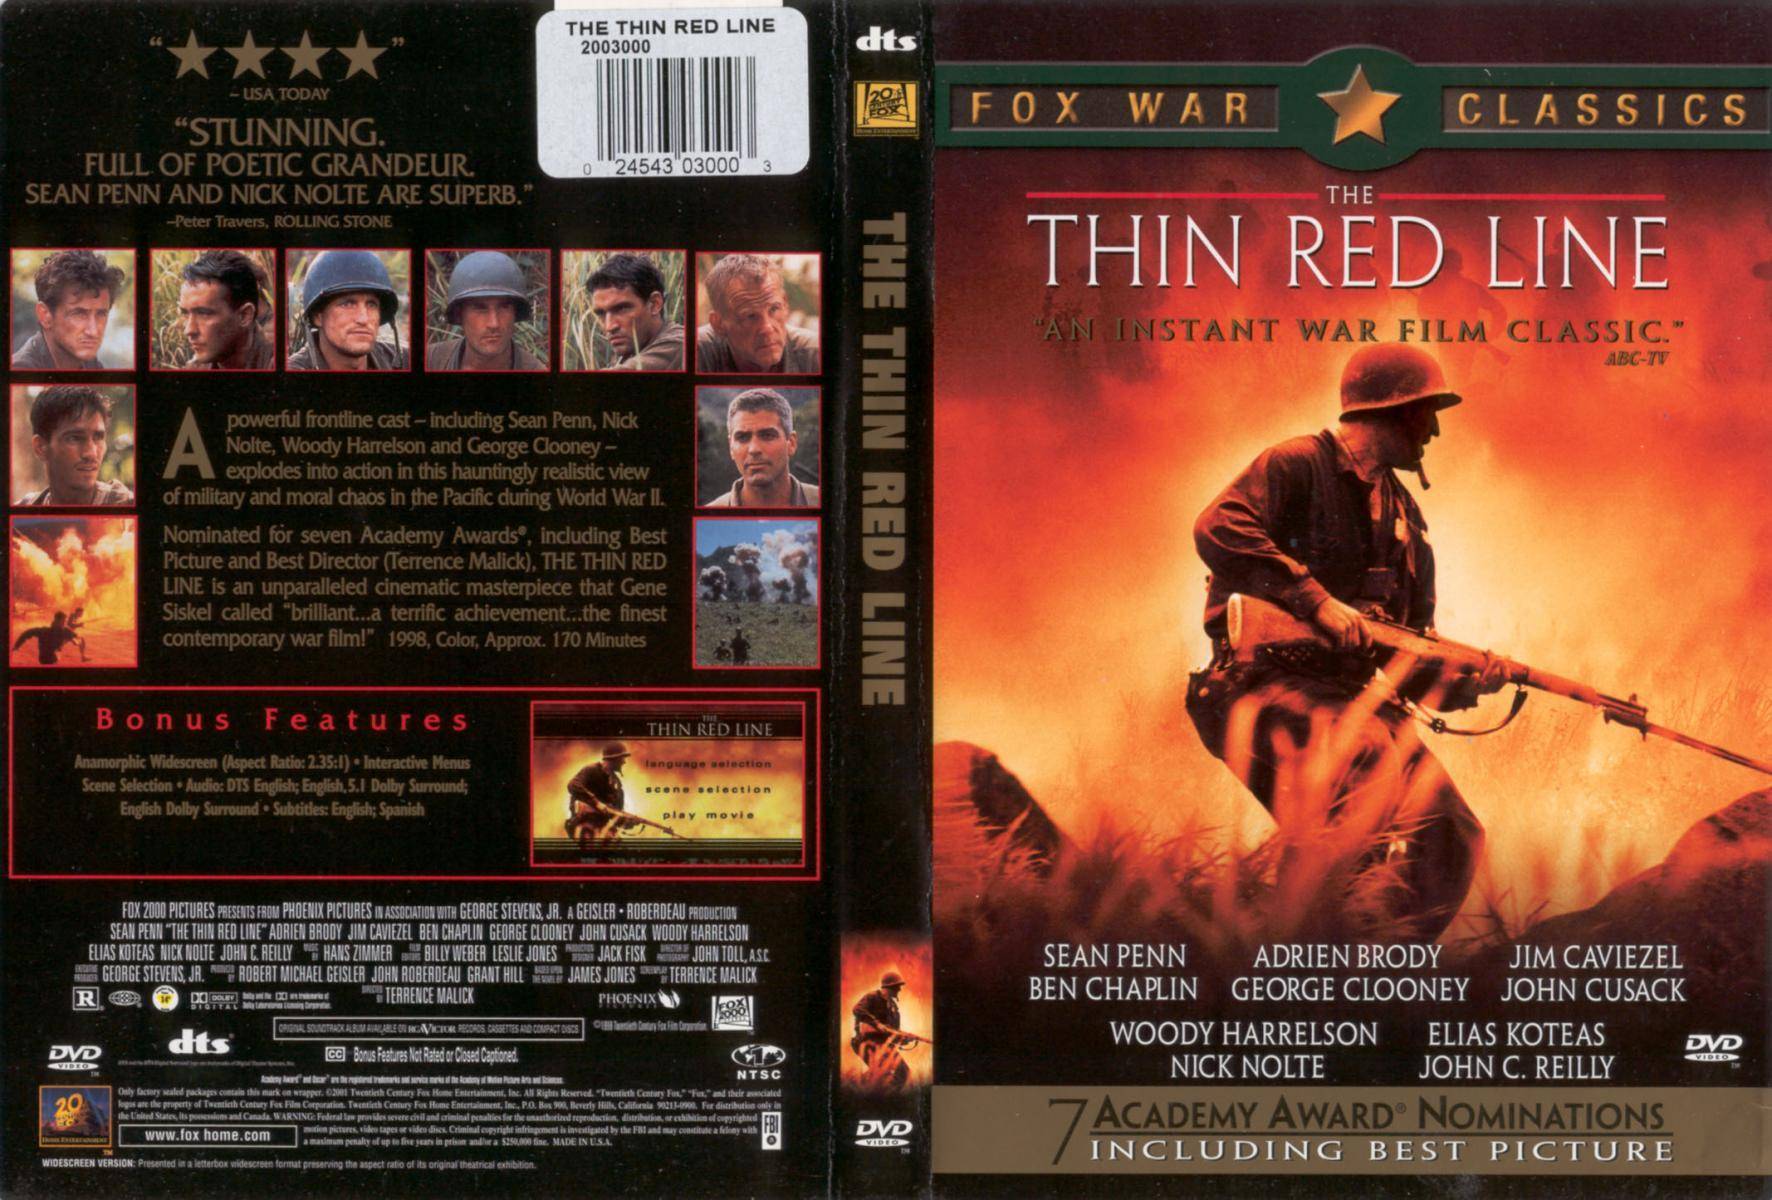 image gallery for the thin red line filmaffinity